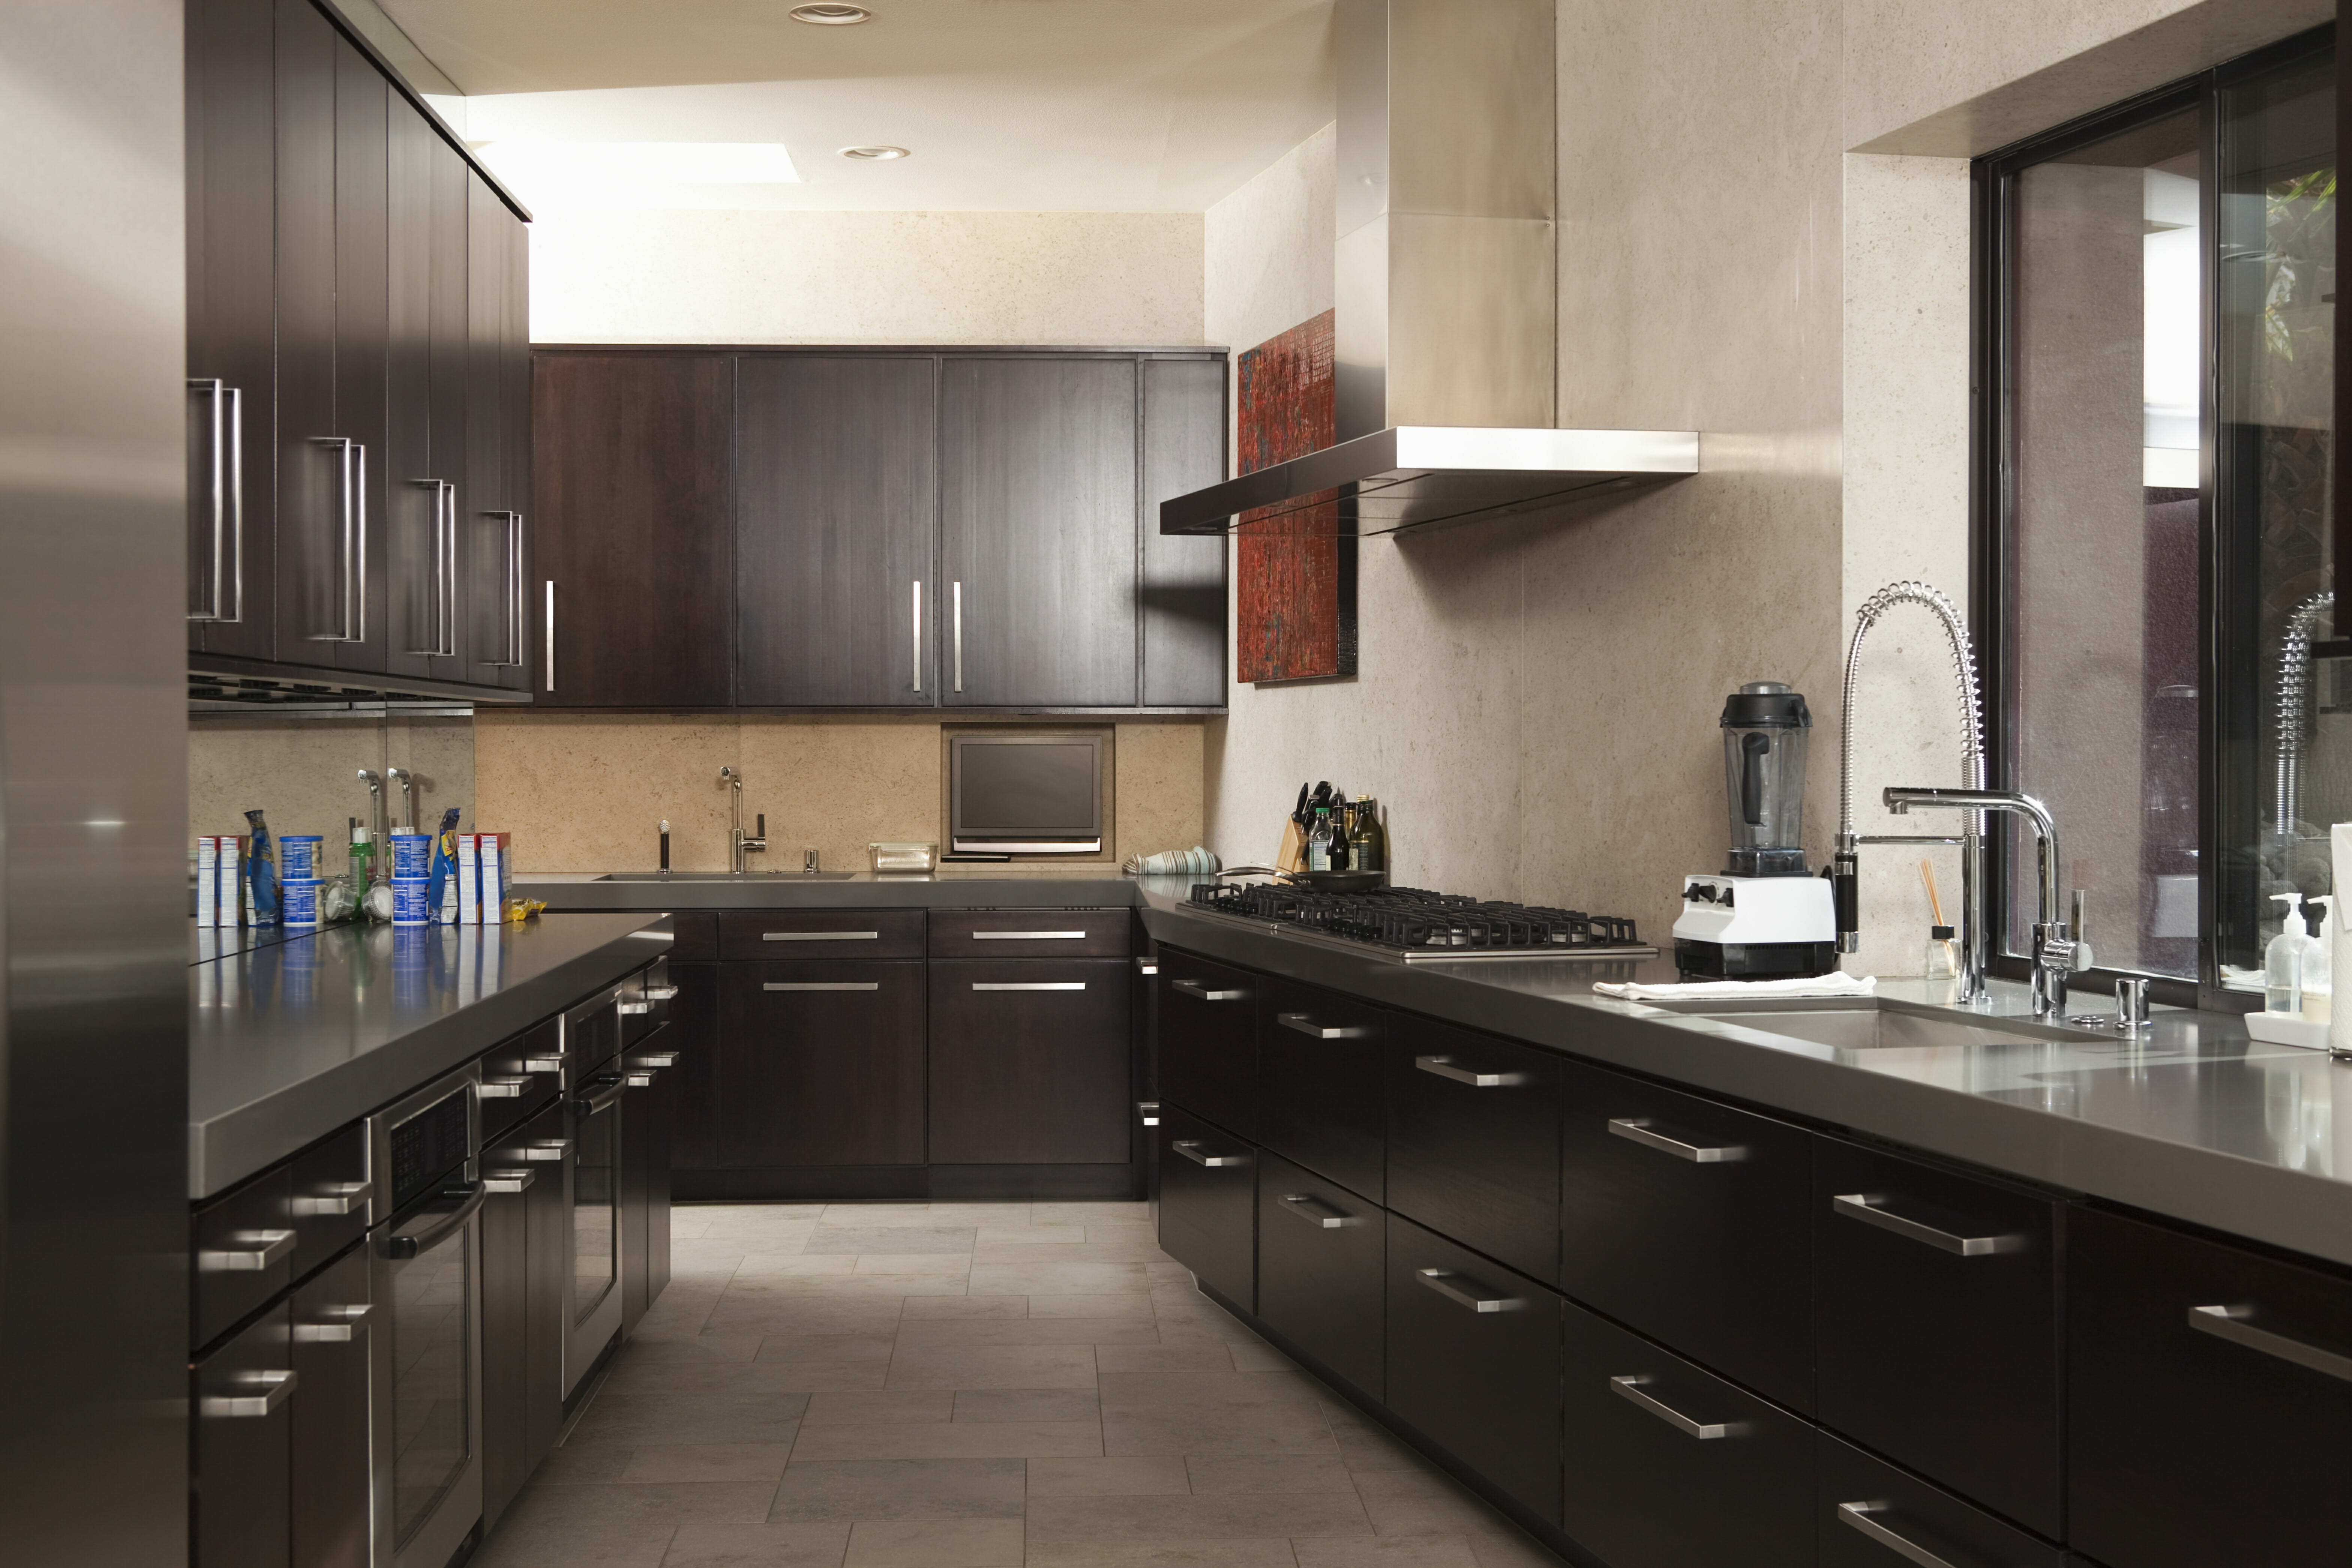 46 gorgeous kitchens with dark cabinets pictures pictures of kitchen cabinets Semi matte cabinets like these provide some light reflection but a lighter floor